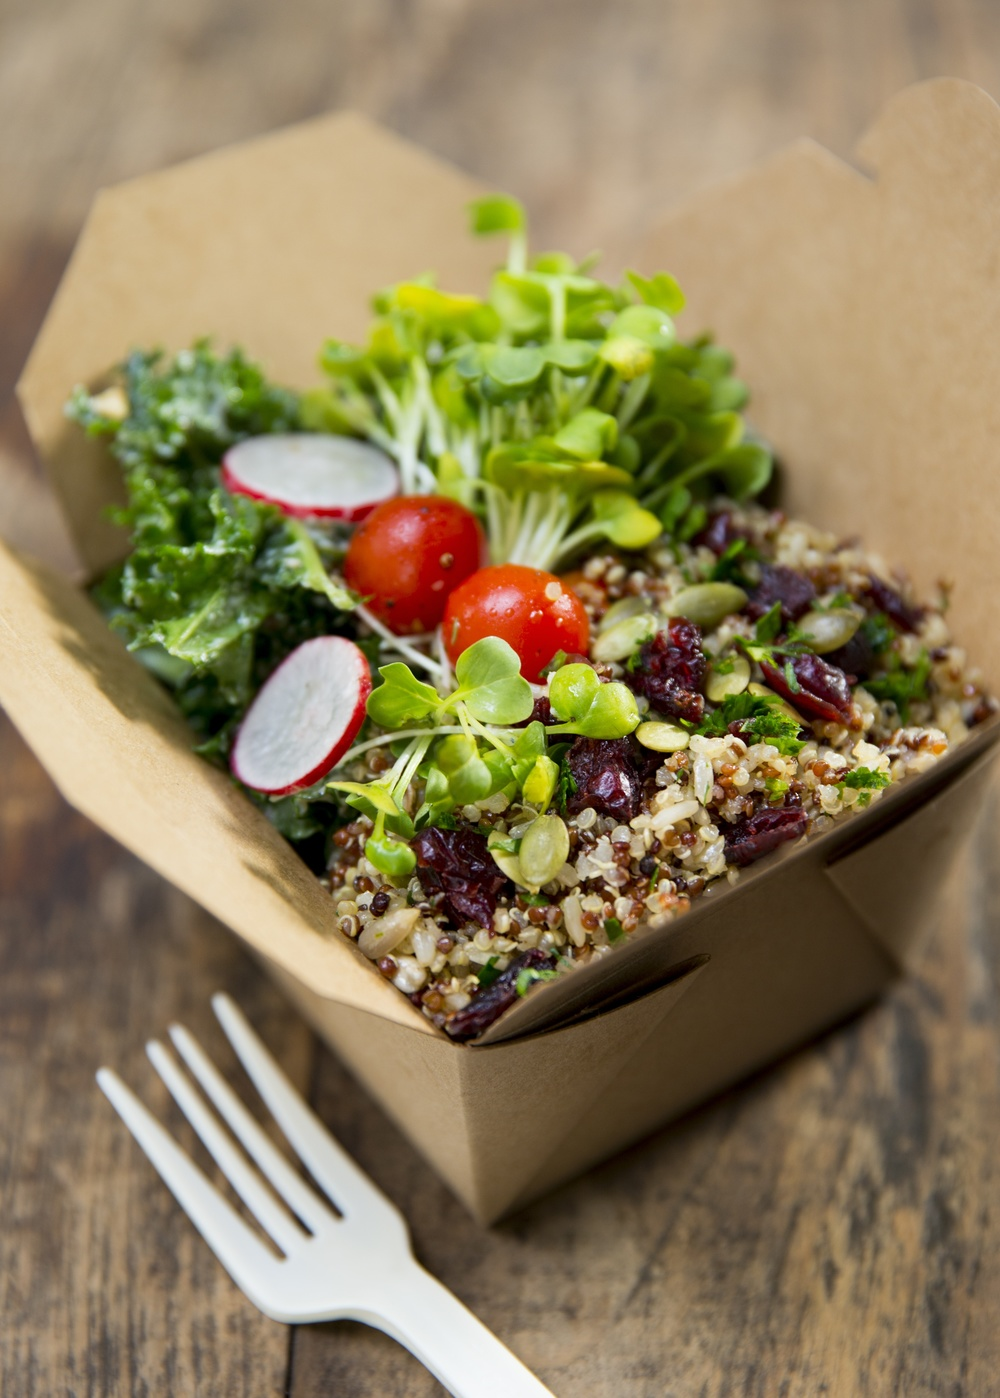 Takeaway box of cooked quinoa and rice topped with fresh vegetables and tomatoes at Mana! Fast Slow Food